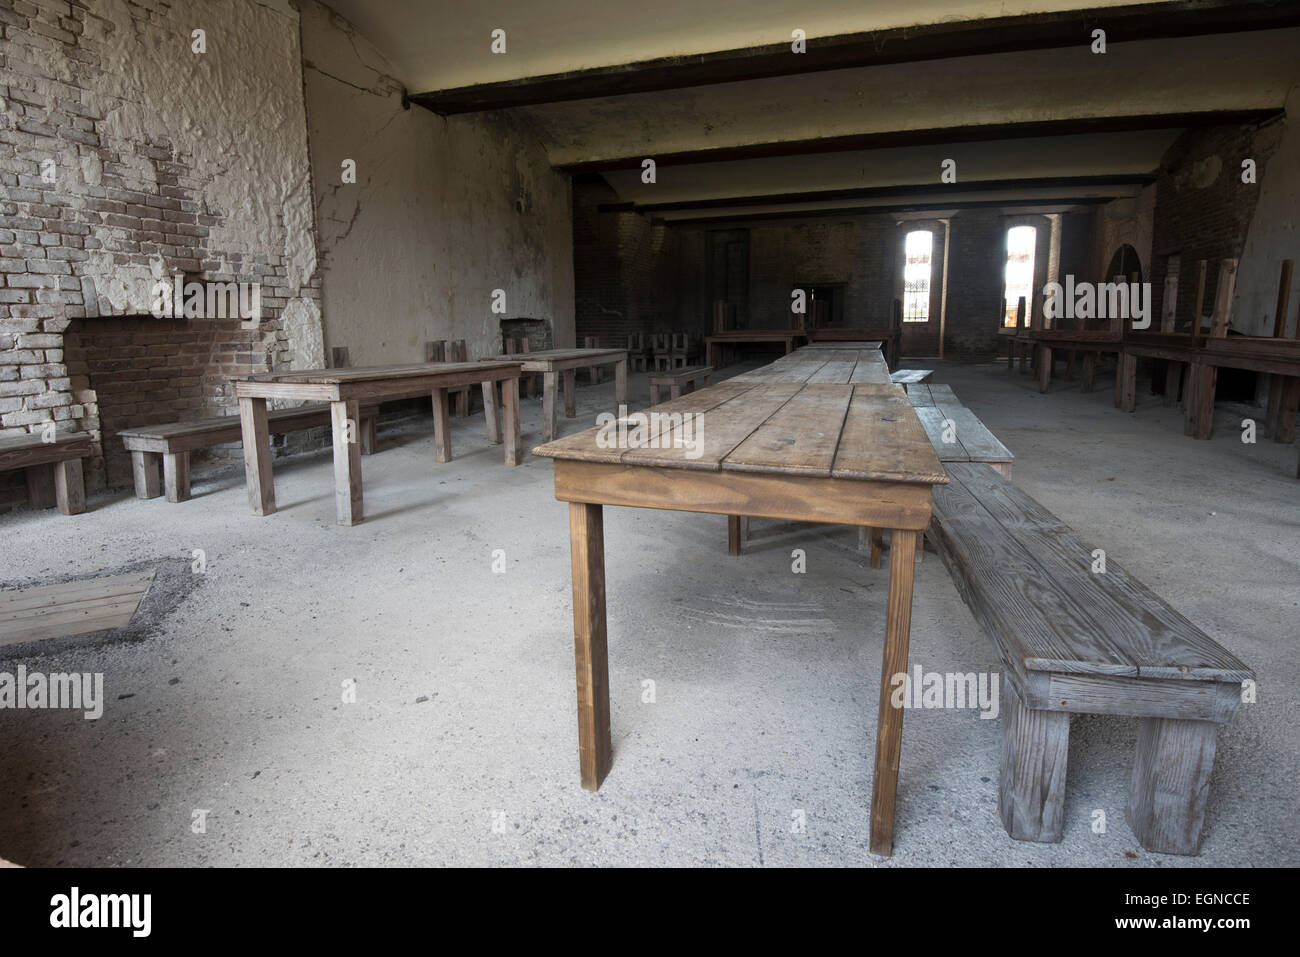 The mess hall at Fort Zachary Taylor State Historical Park - Stock Image